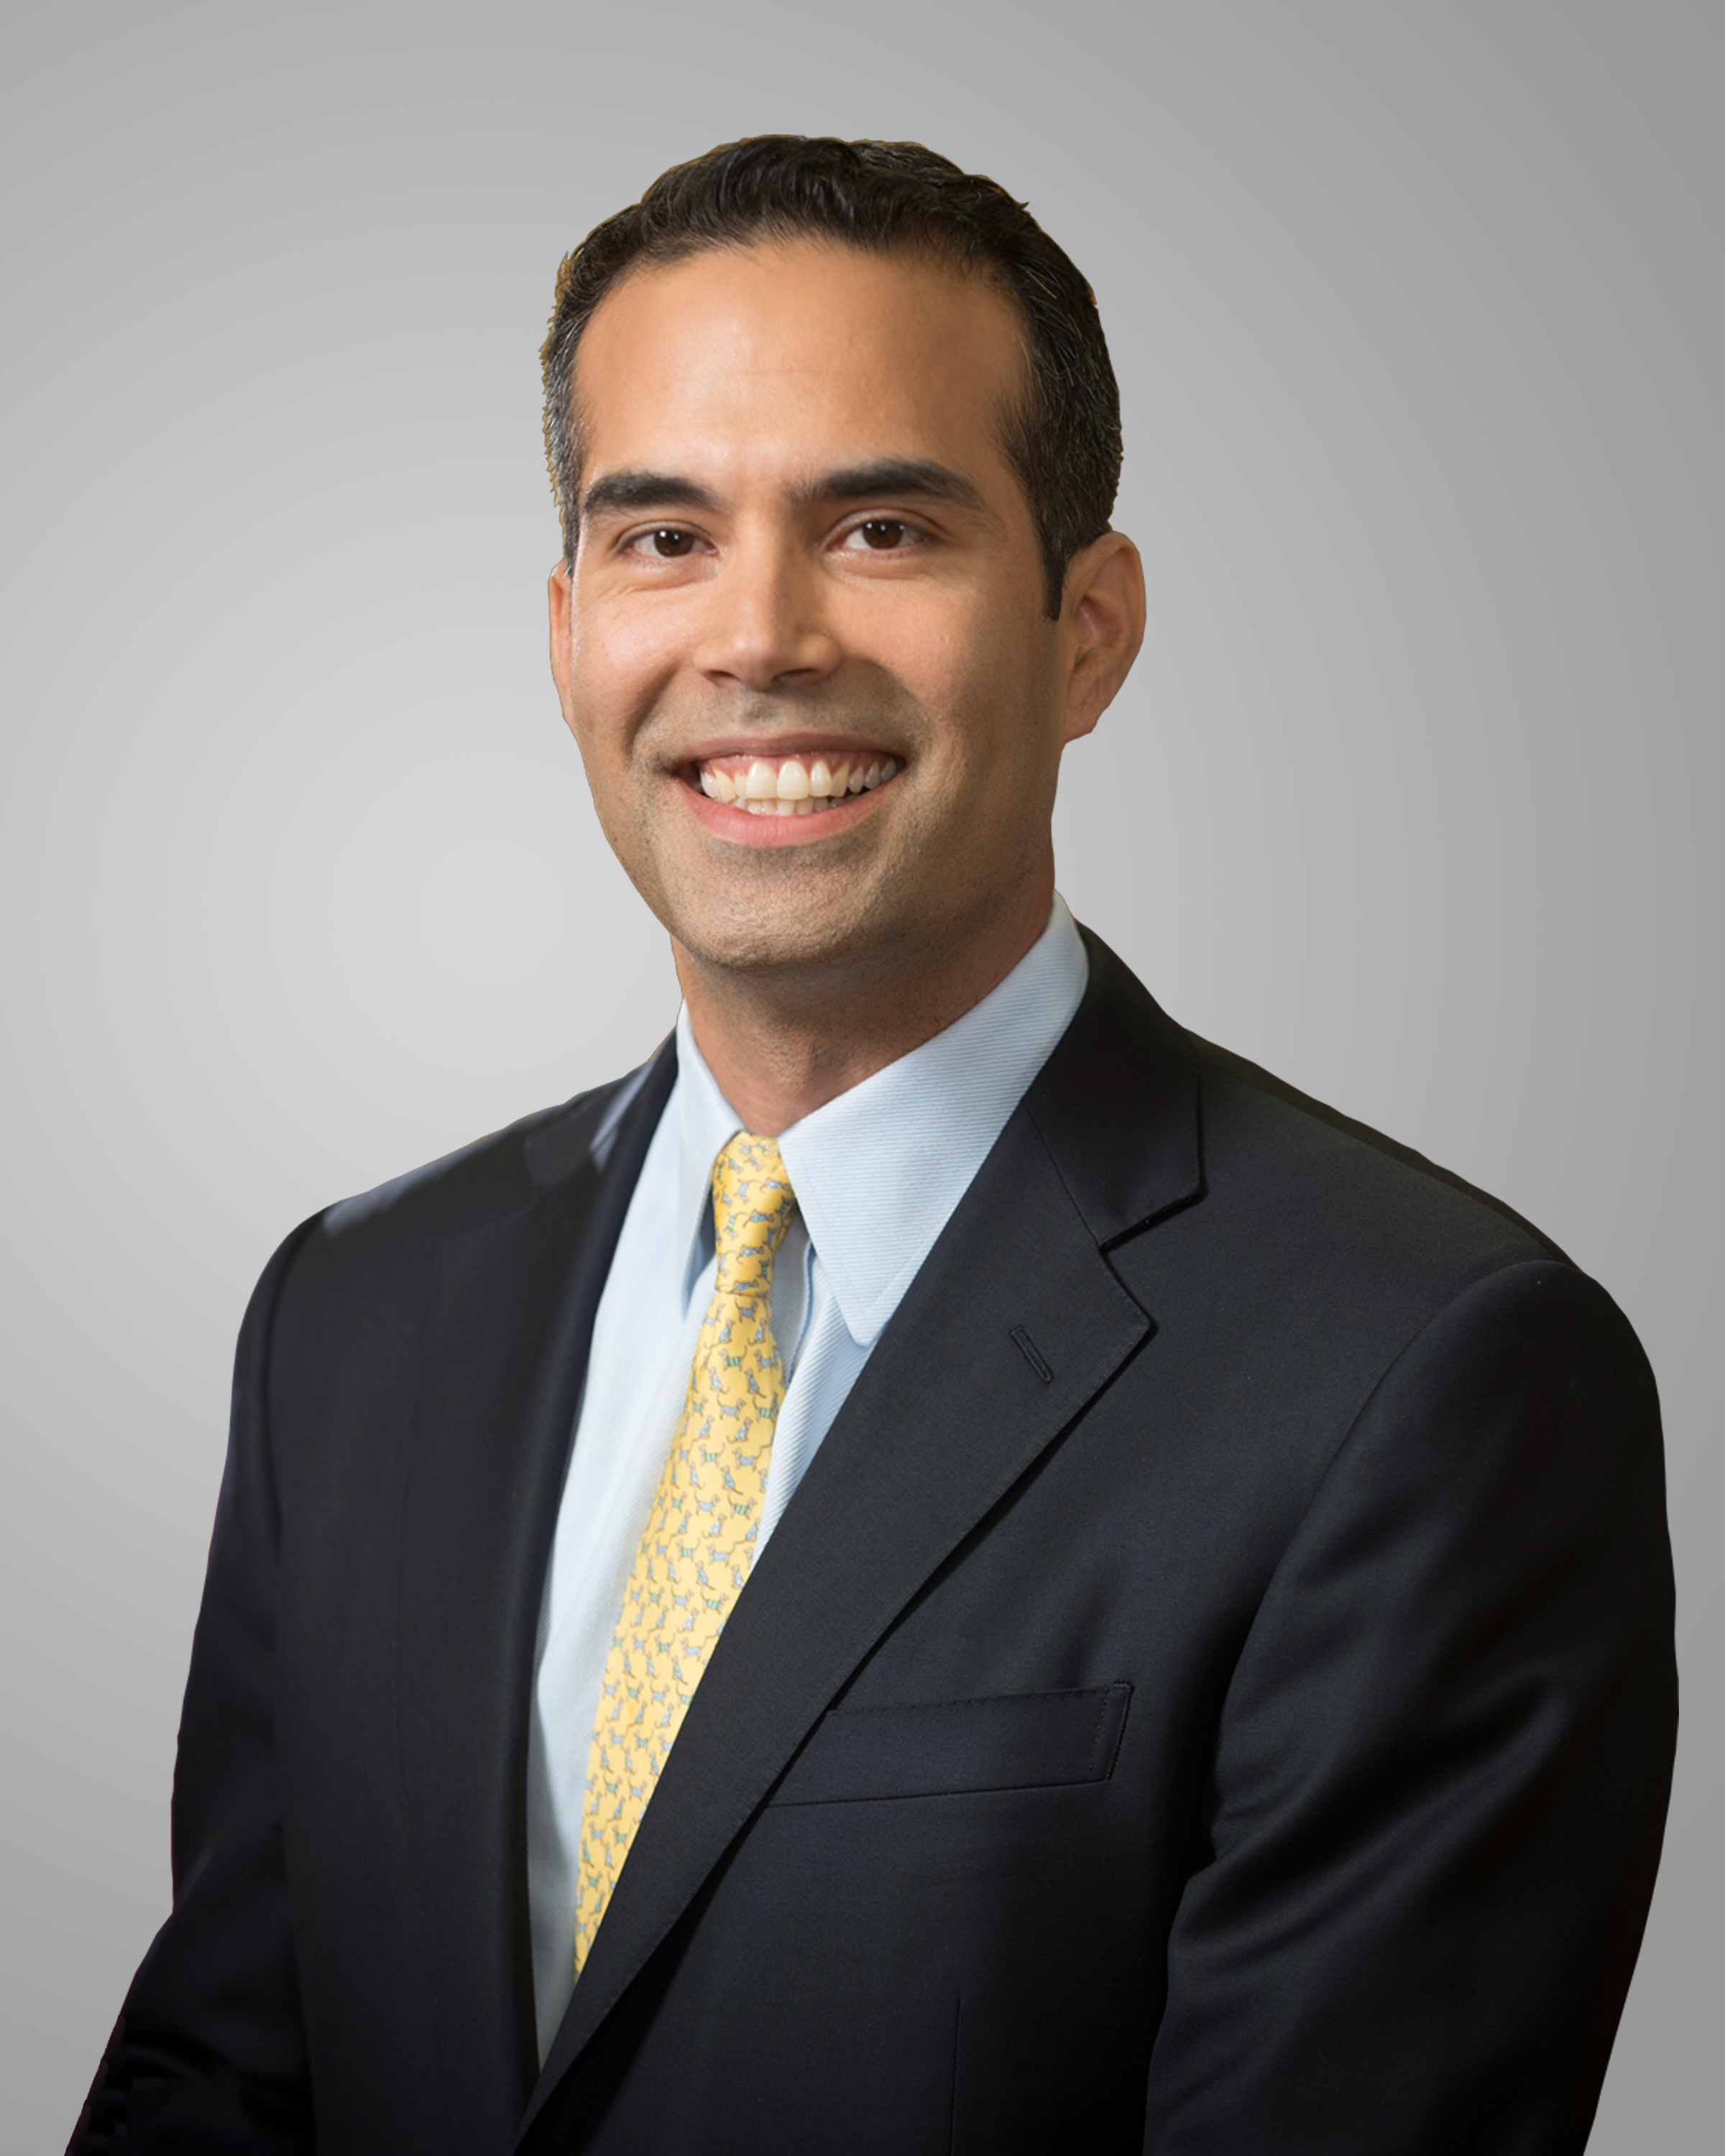 George P Bush Photo.jpg